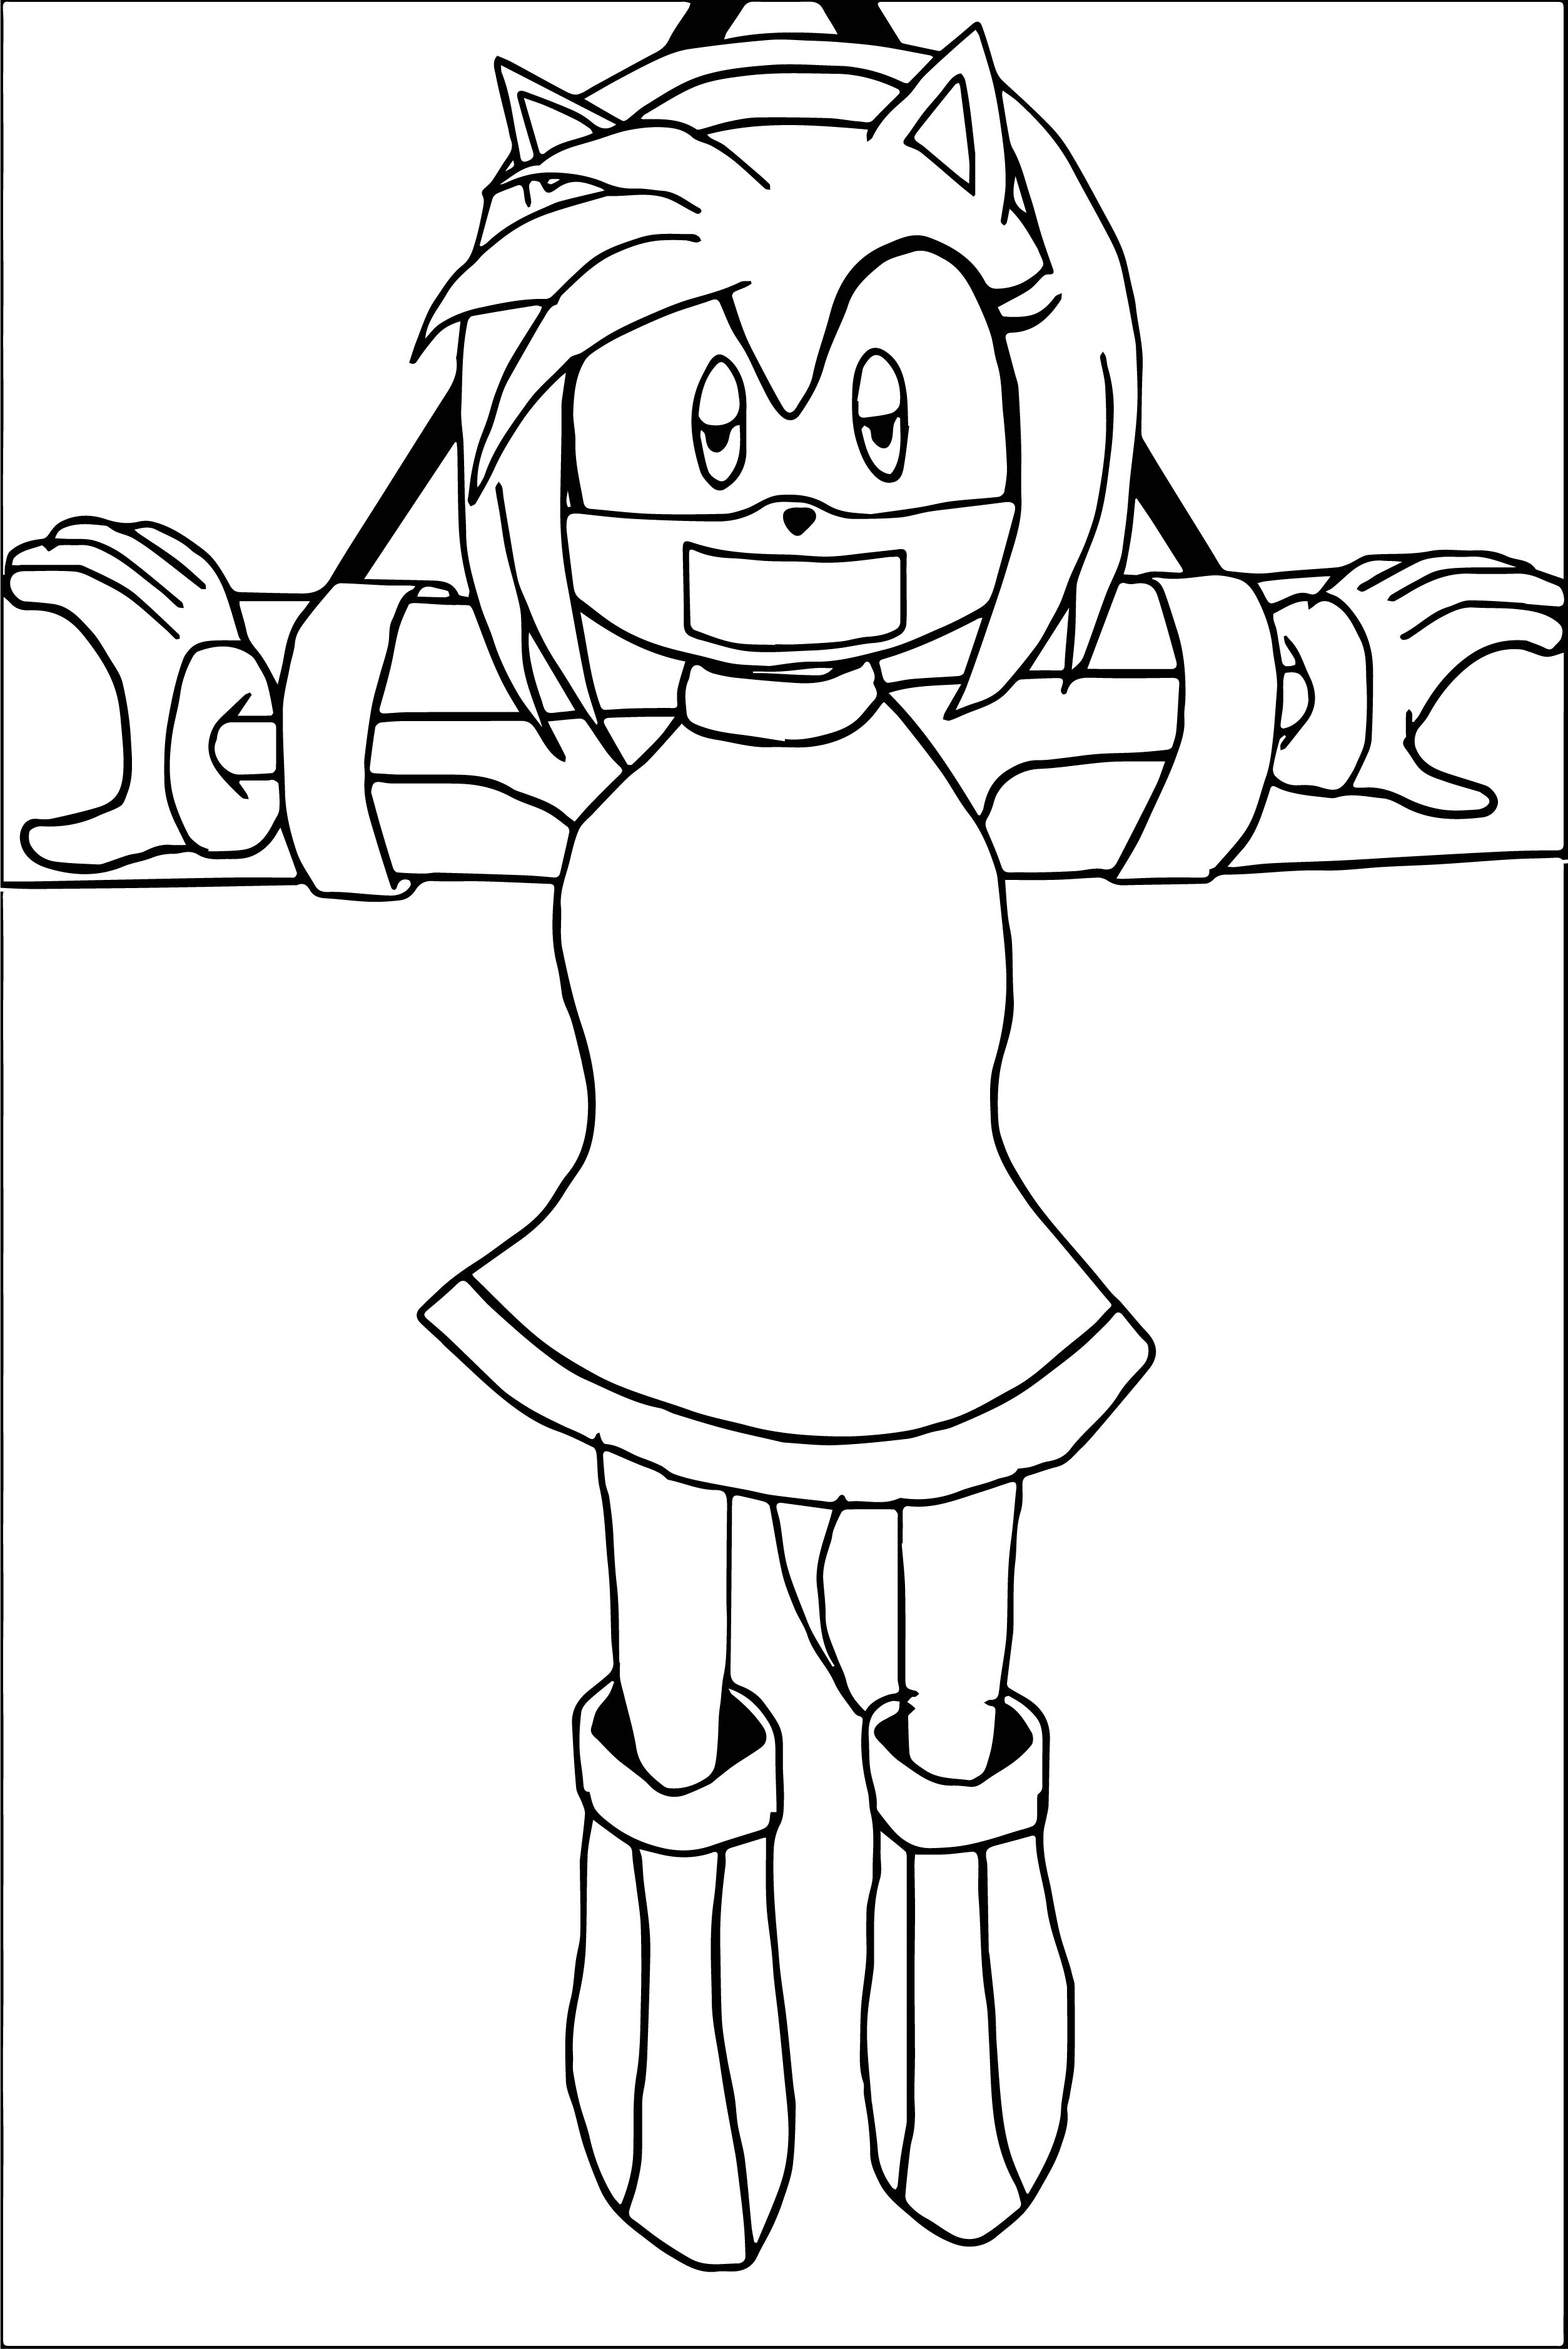 Amy Rose Cathed Coloring Page